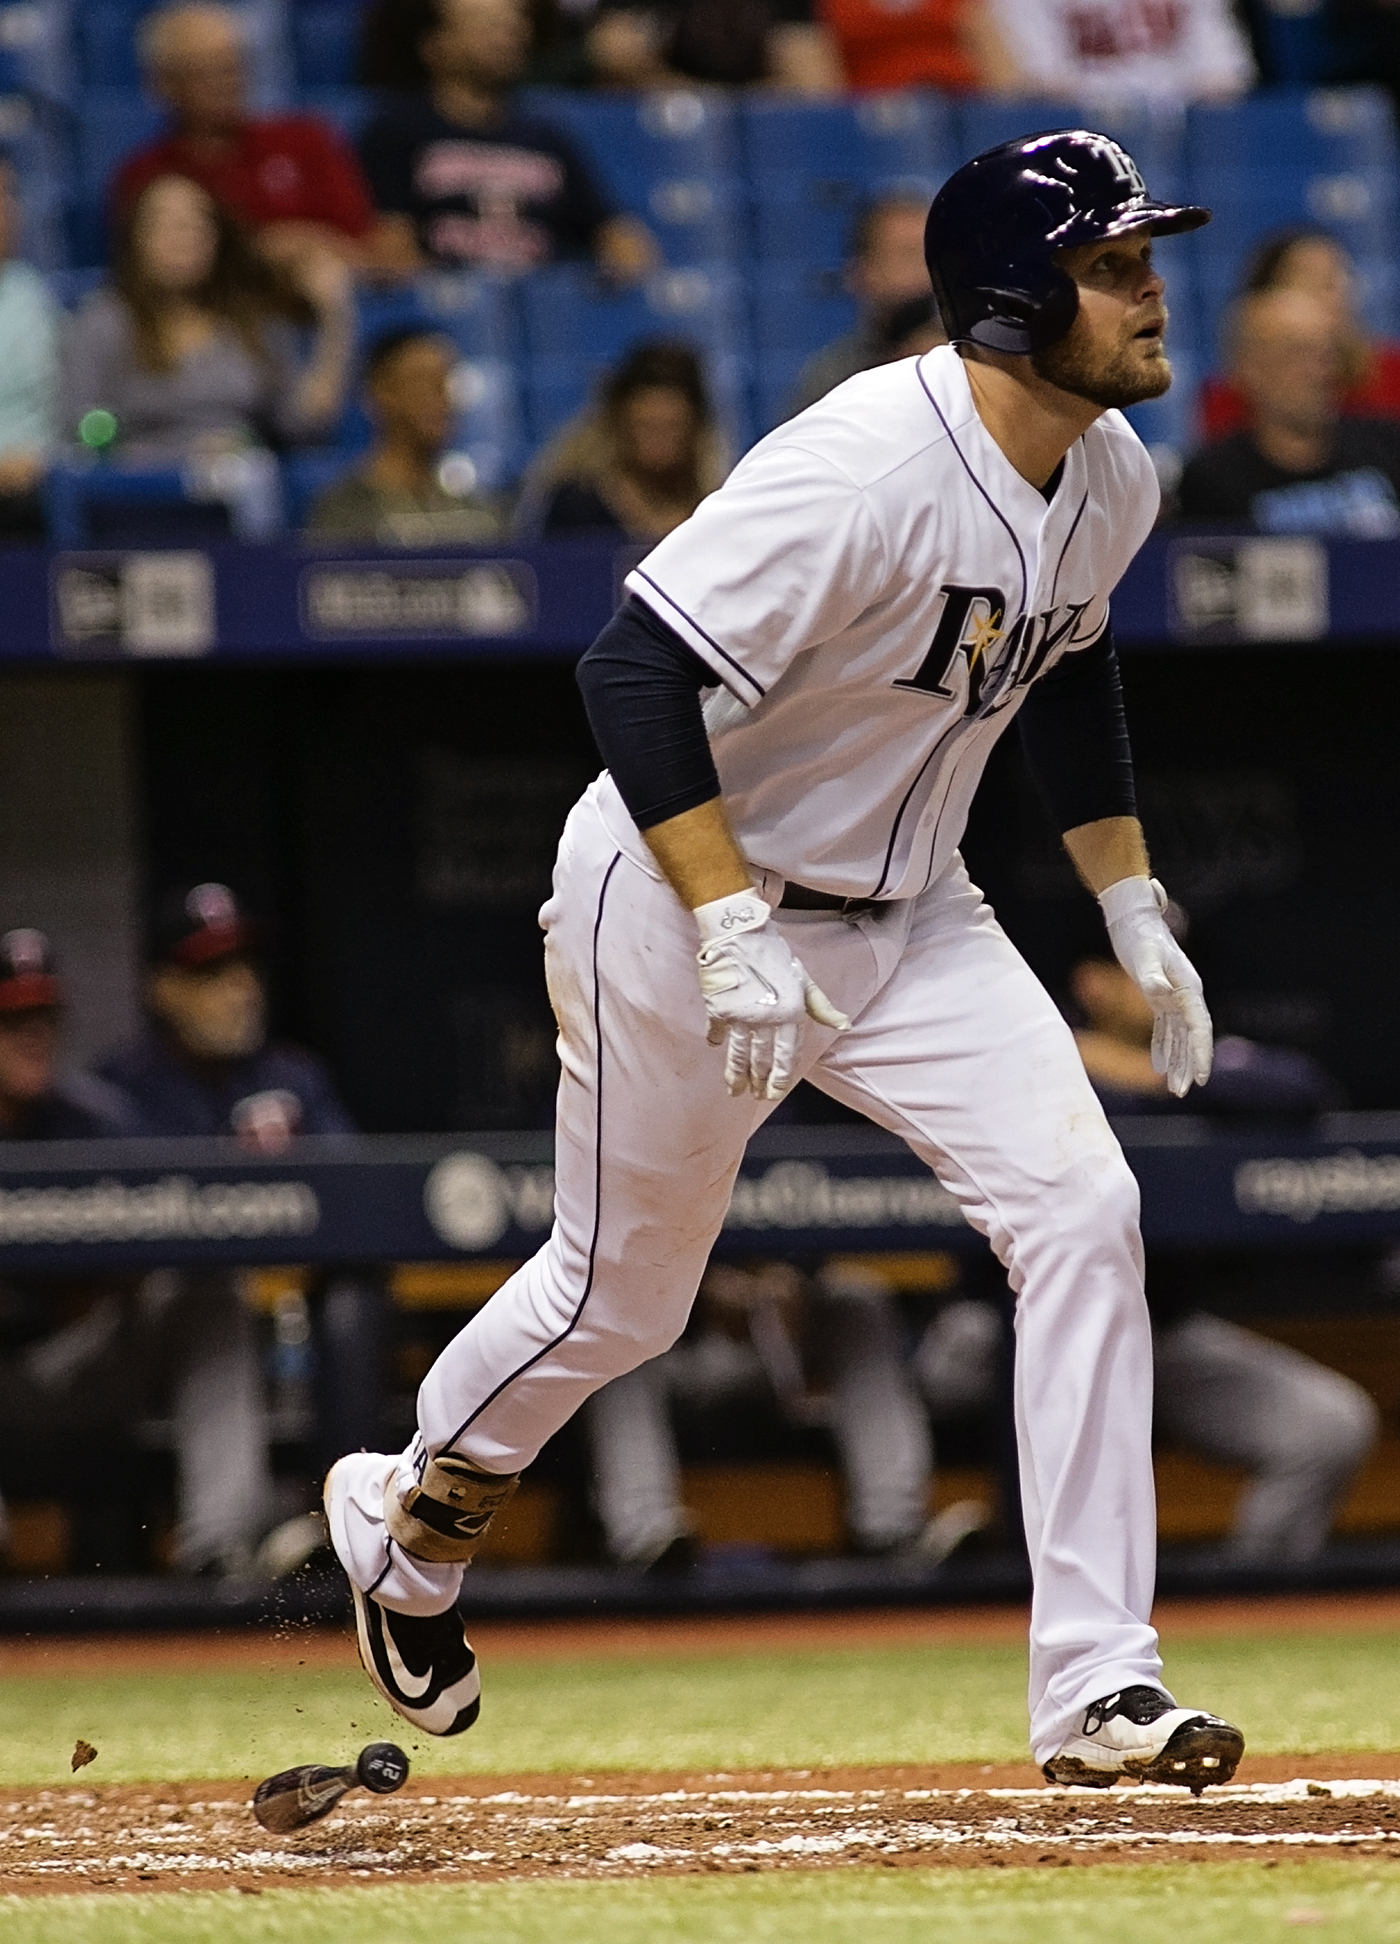 Lucas Duda had a three-run homer for the Rays./CARMEN MANDATO